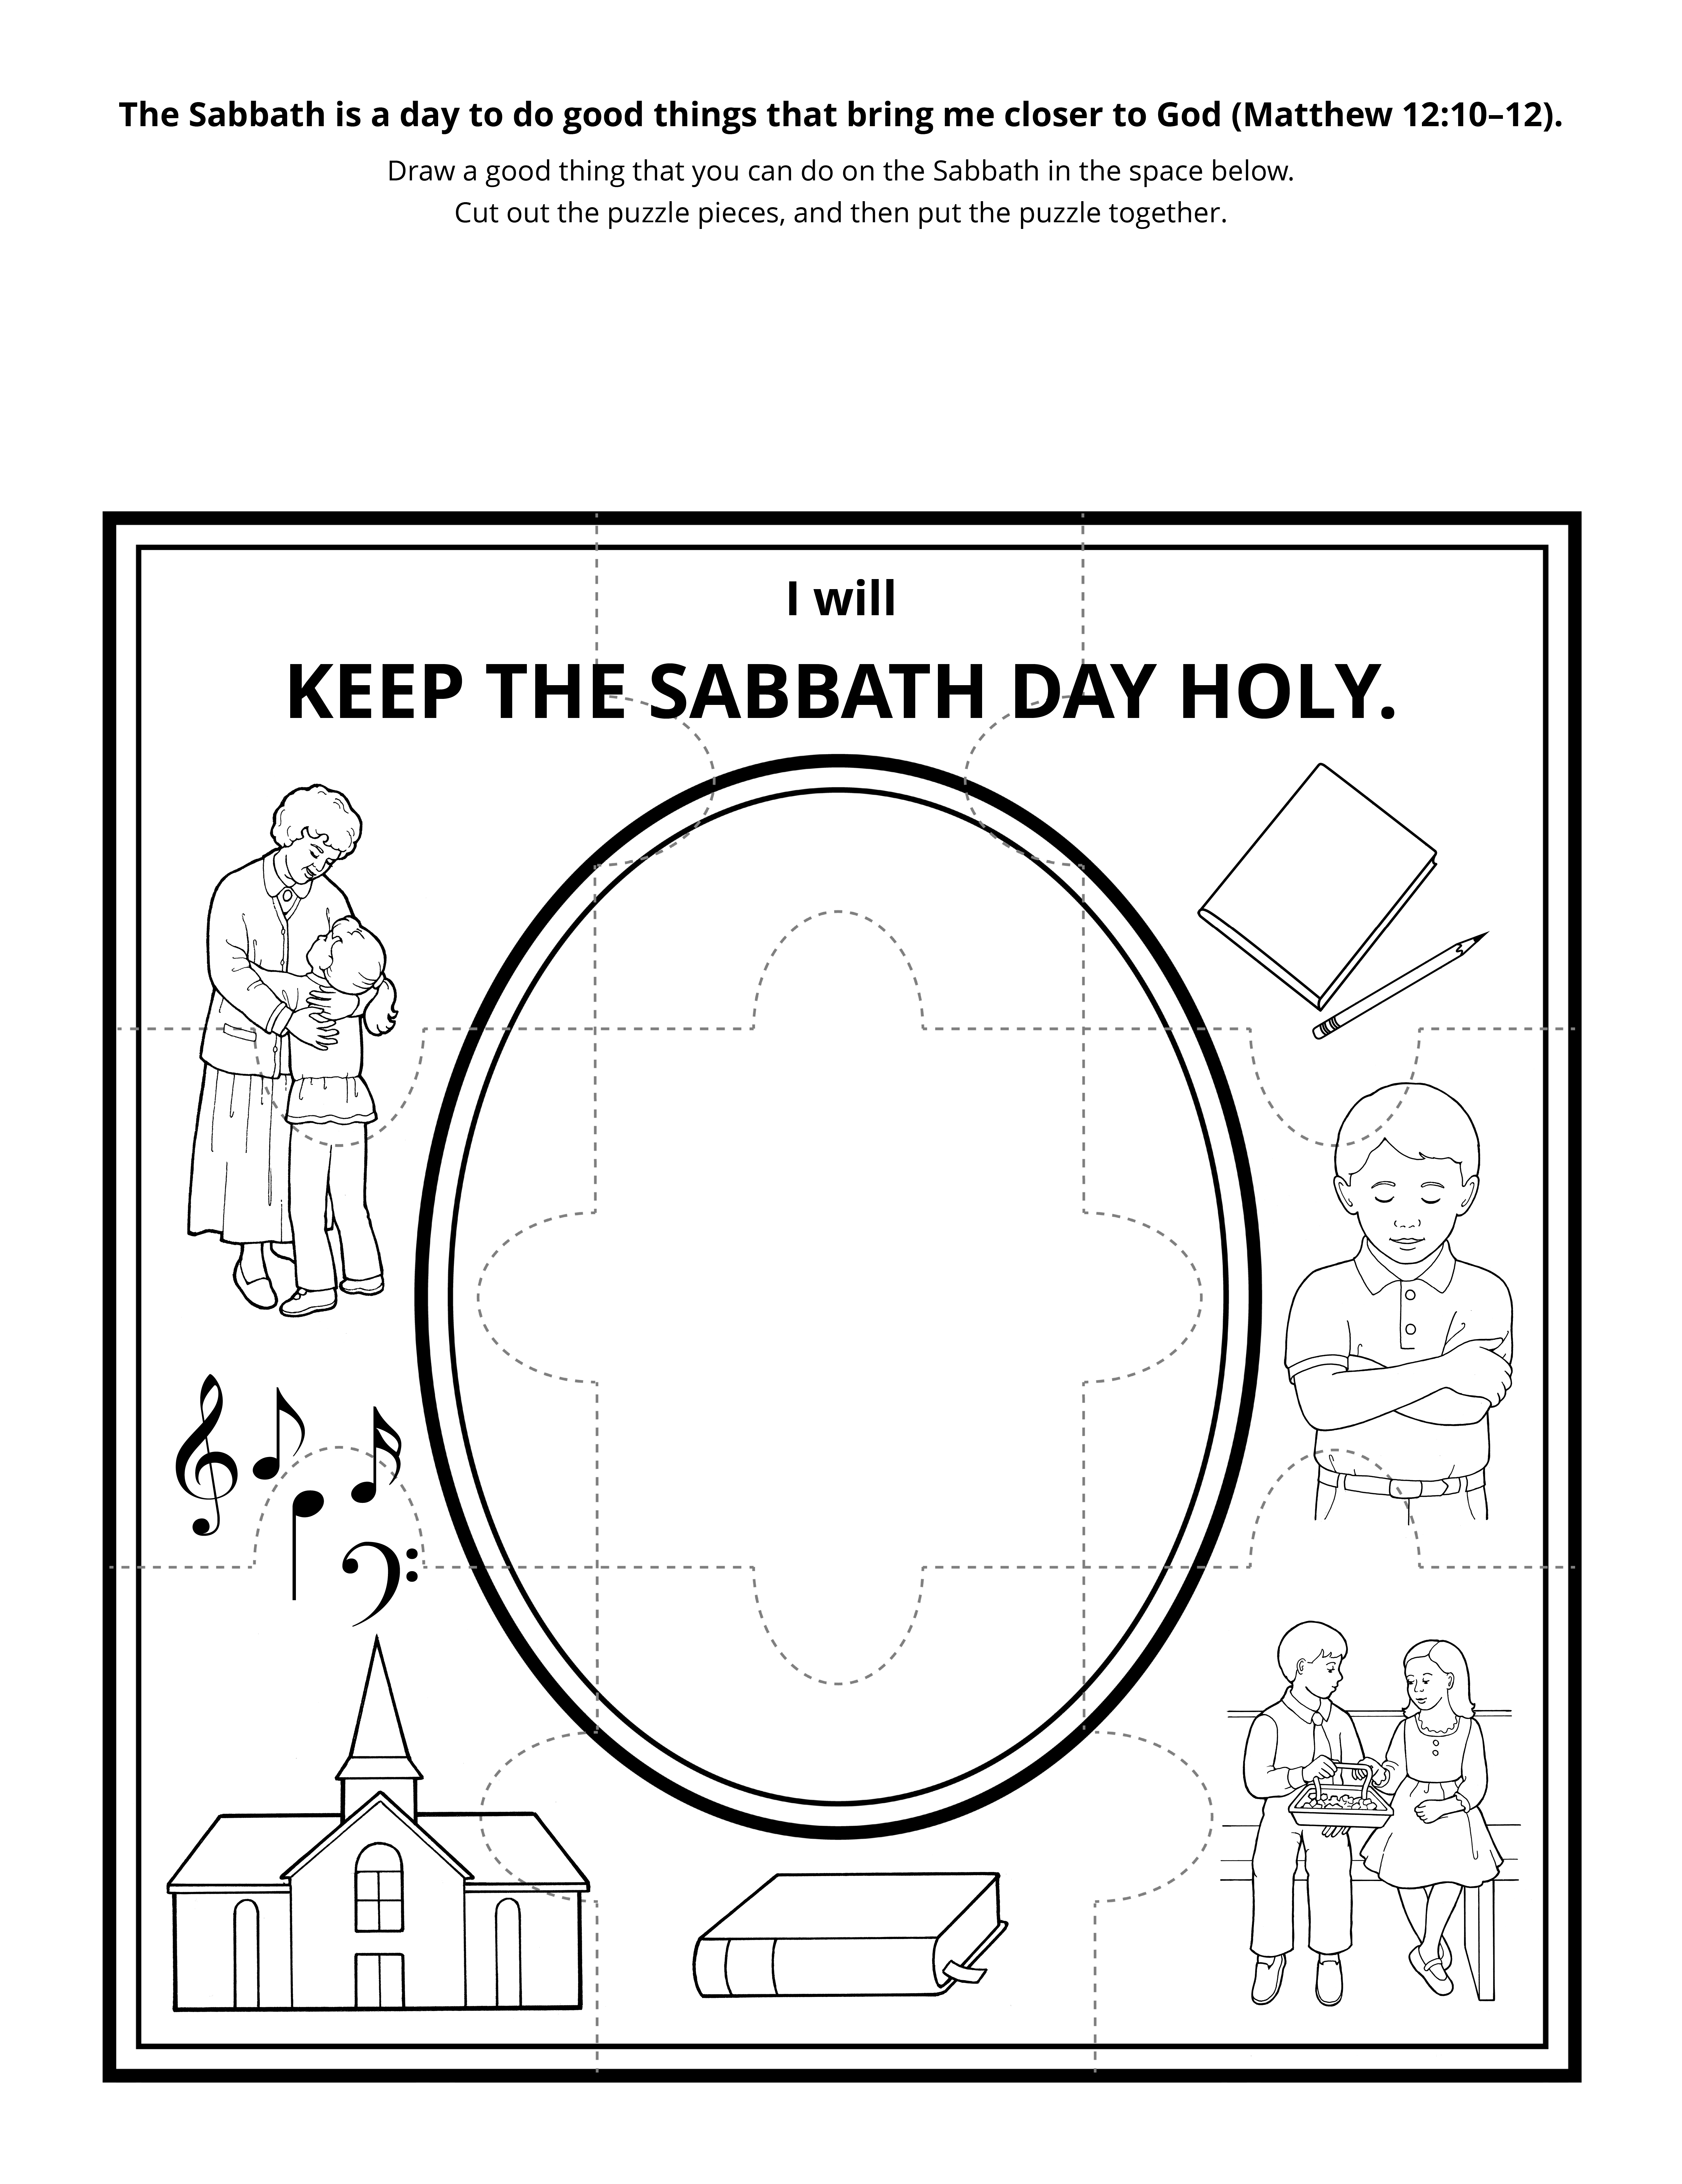 activity page: I will keep the Sabbath holy